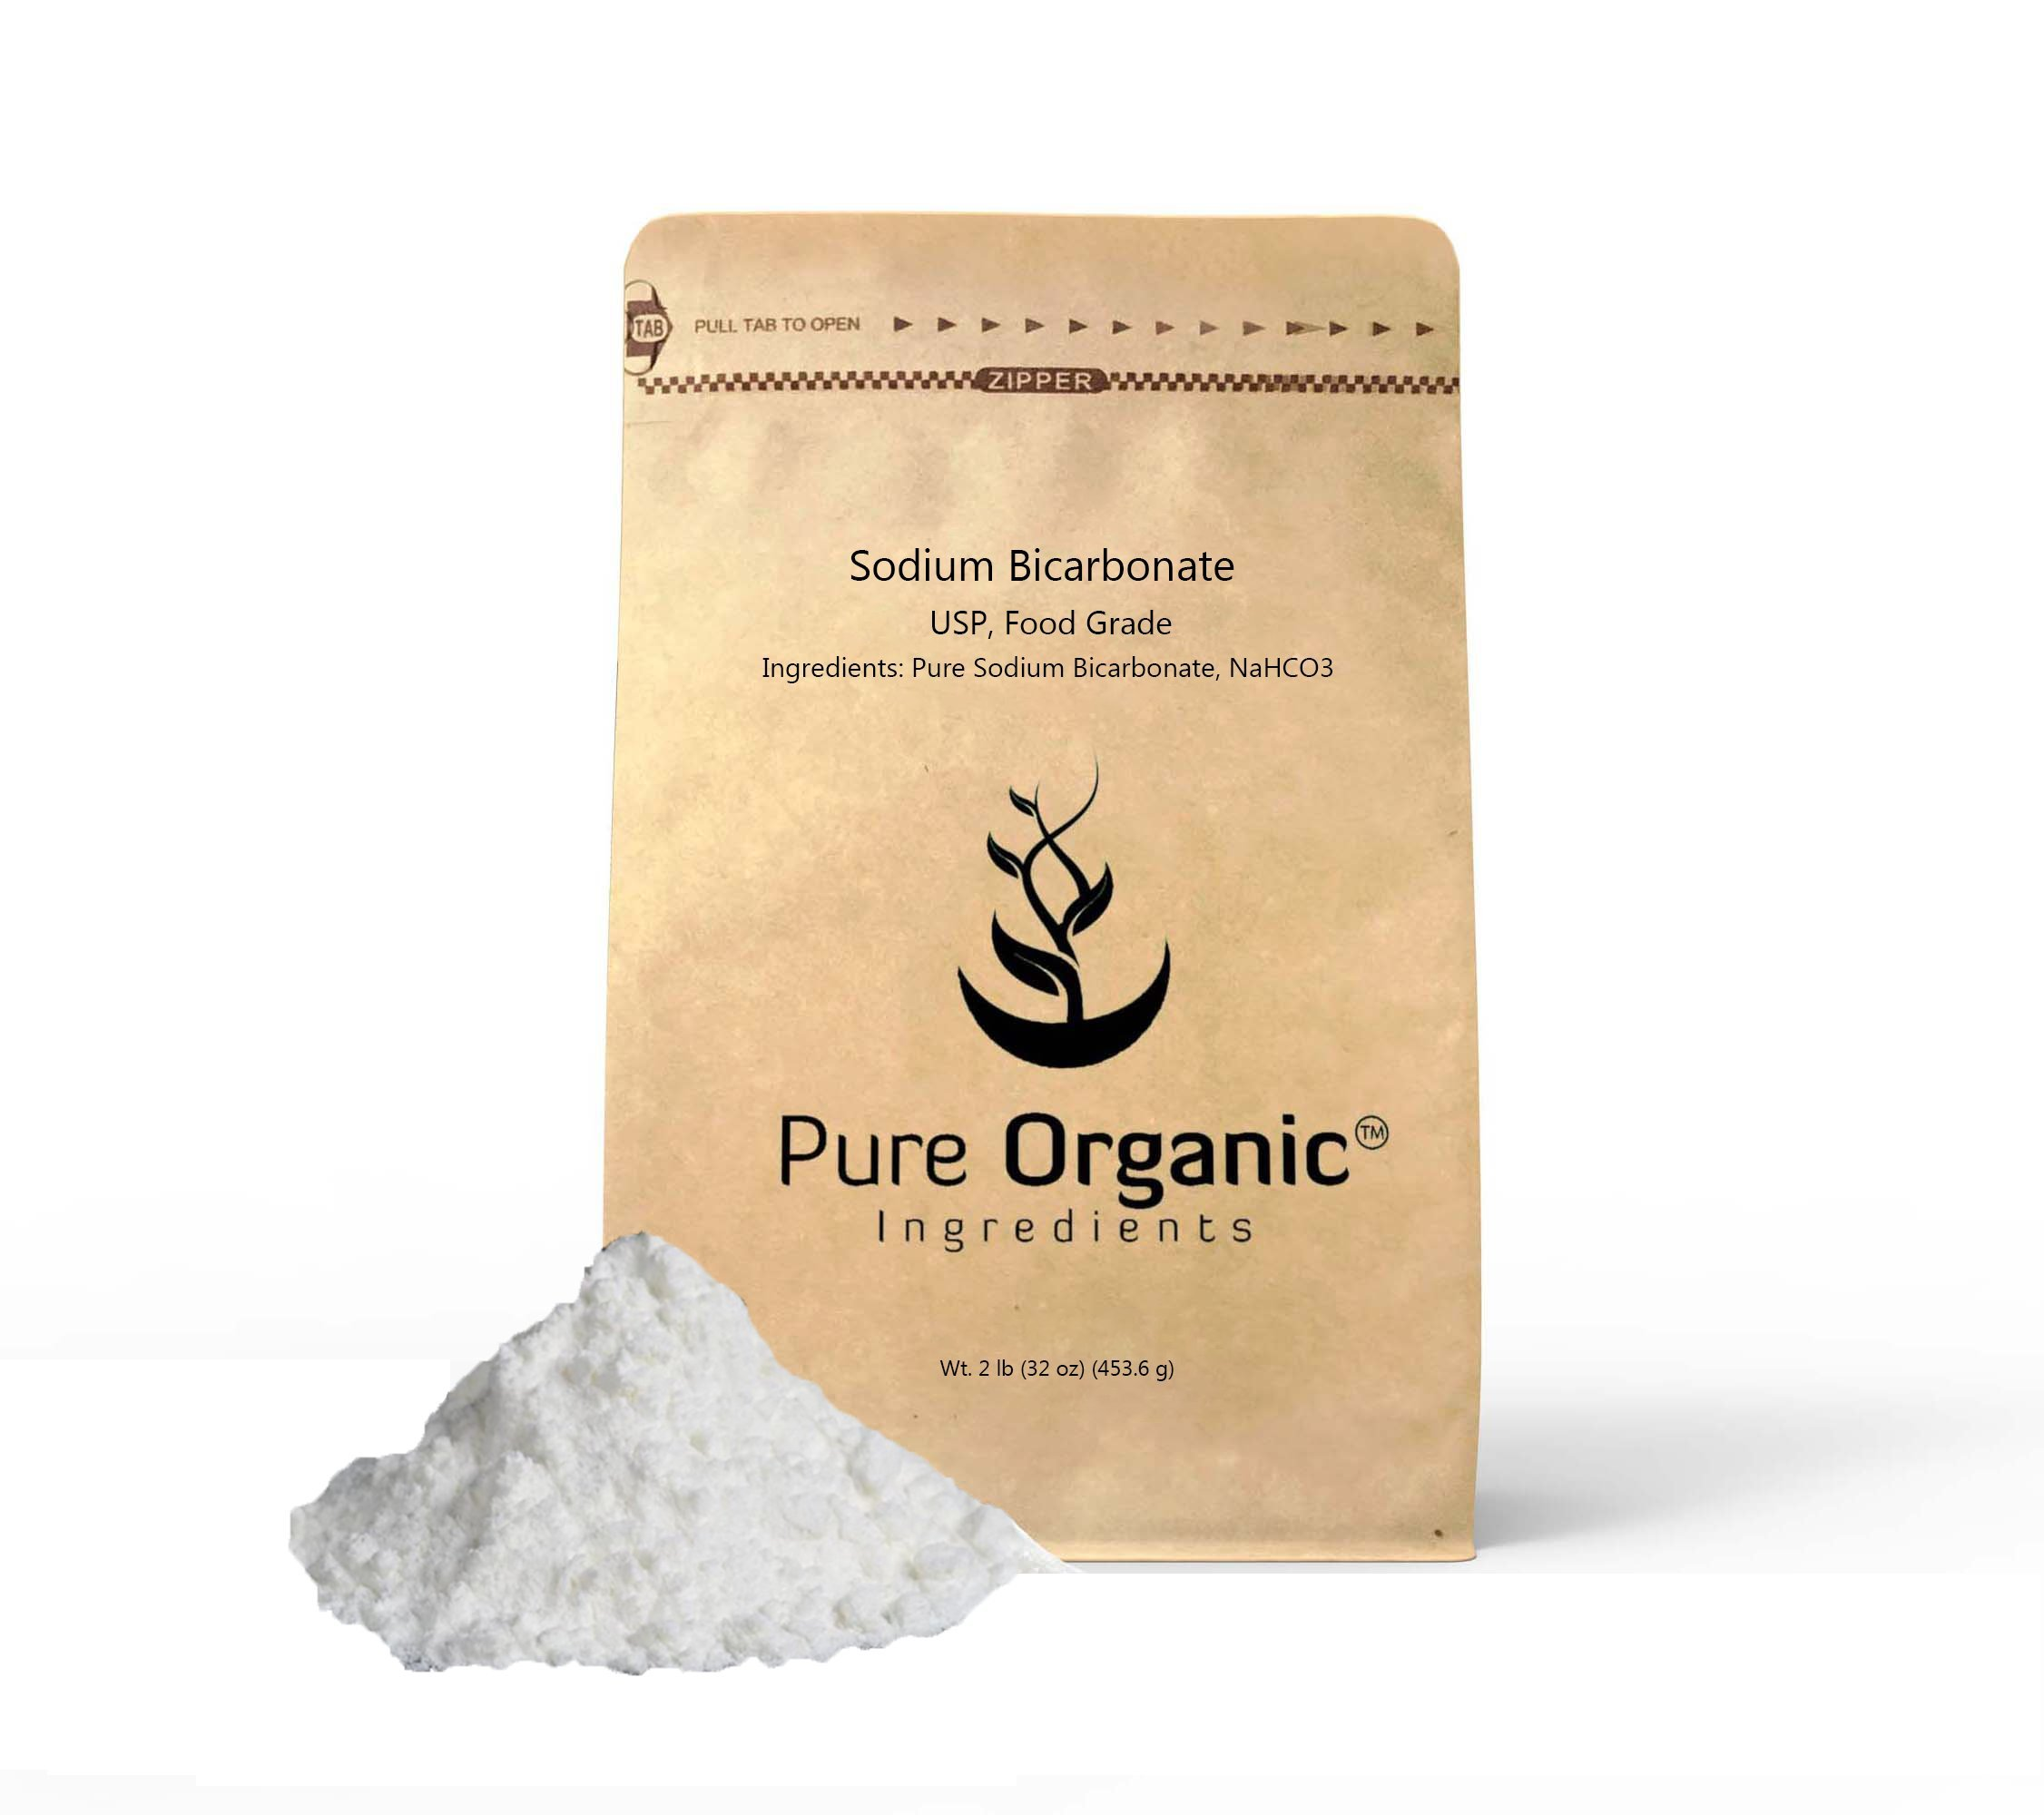 Sodium Bicarbonate, Baking Soda (32 oz 2 lb) Highest Purity, Food Grade, Eco-Friendly Packaging (Also available in 4 oz, 1 lb, 5 lb, & 50 lb)